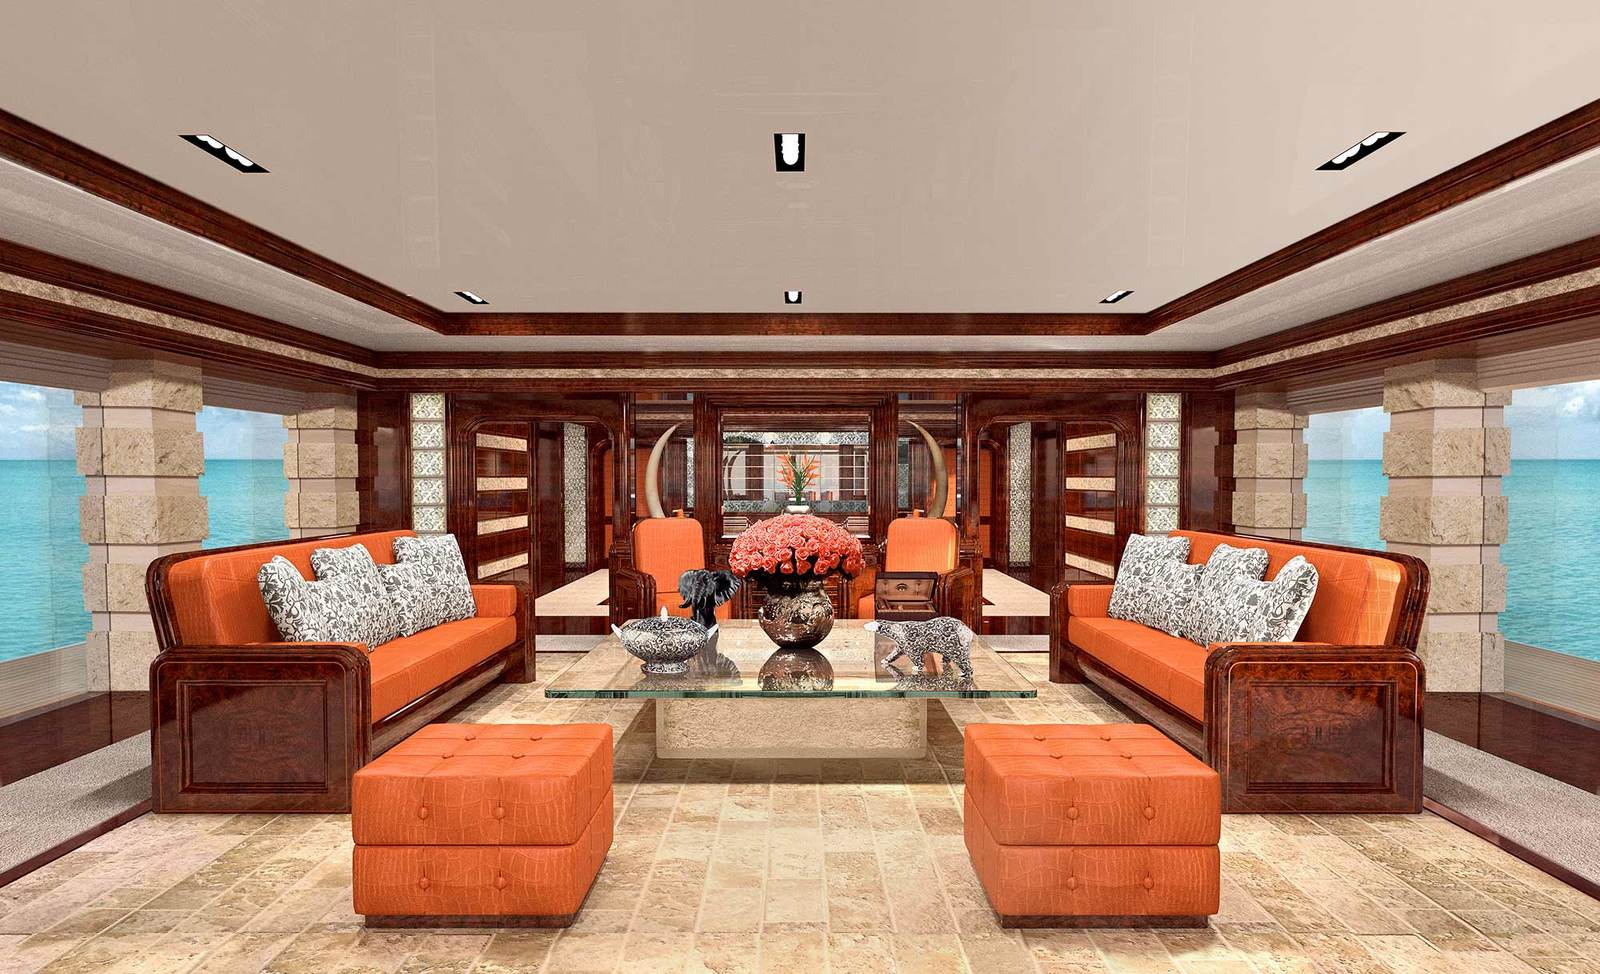 The Interiors of Luxury Yachts What Does Absolute fort Look Like